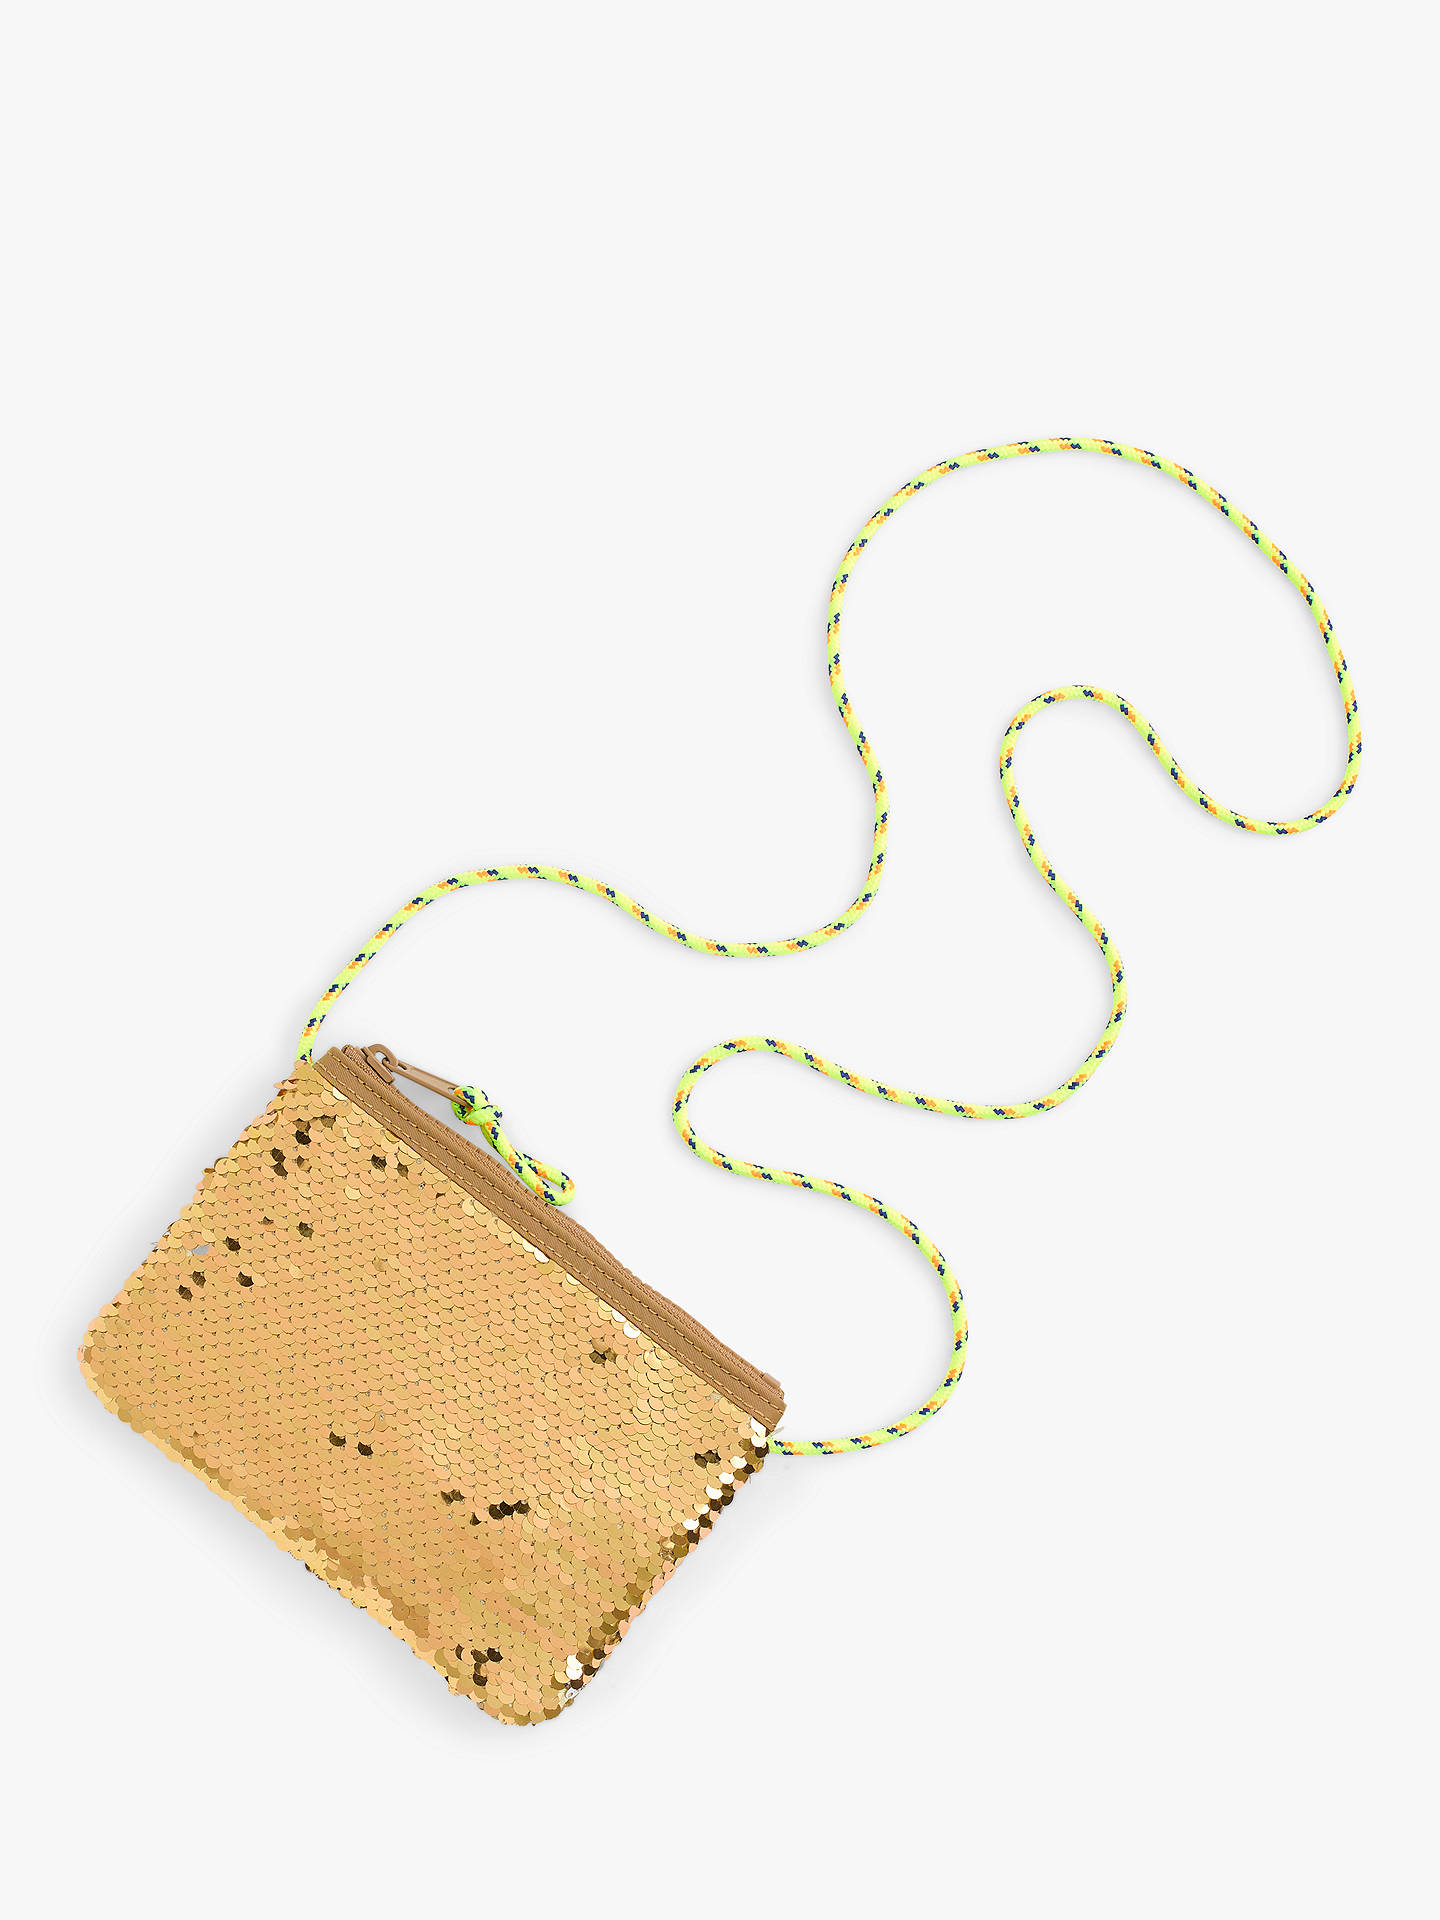 2cd9fa71e Buy crewcuts by J.Crew Girls' Reversible Sequin Bag, Gold Online at  johnlewis ...